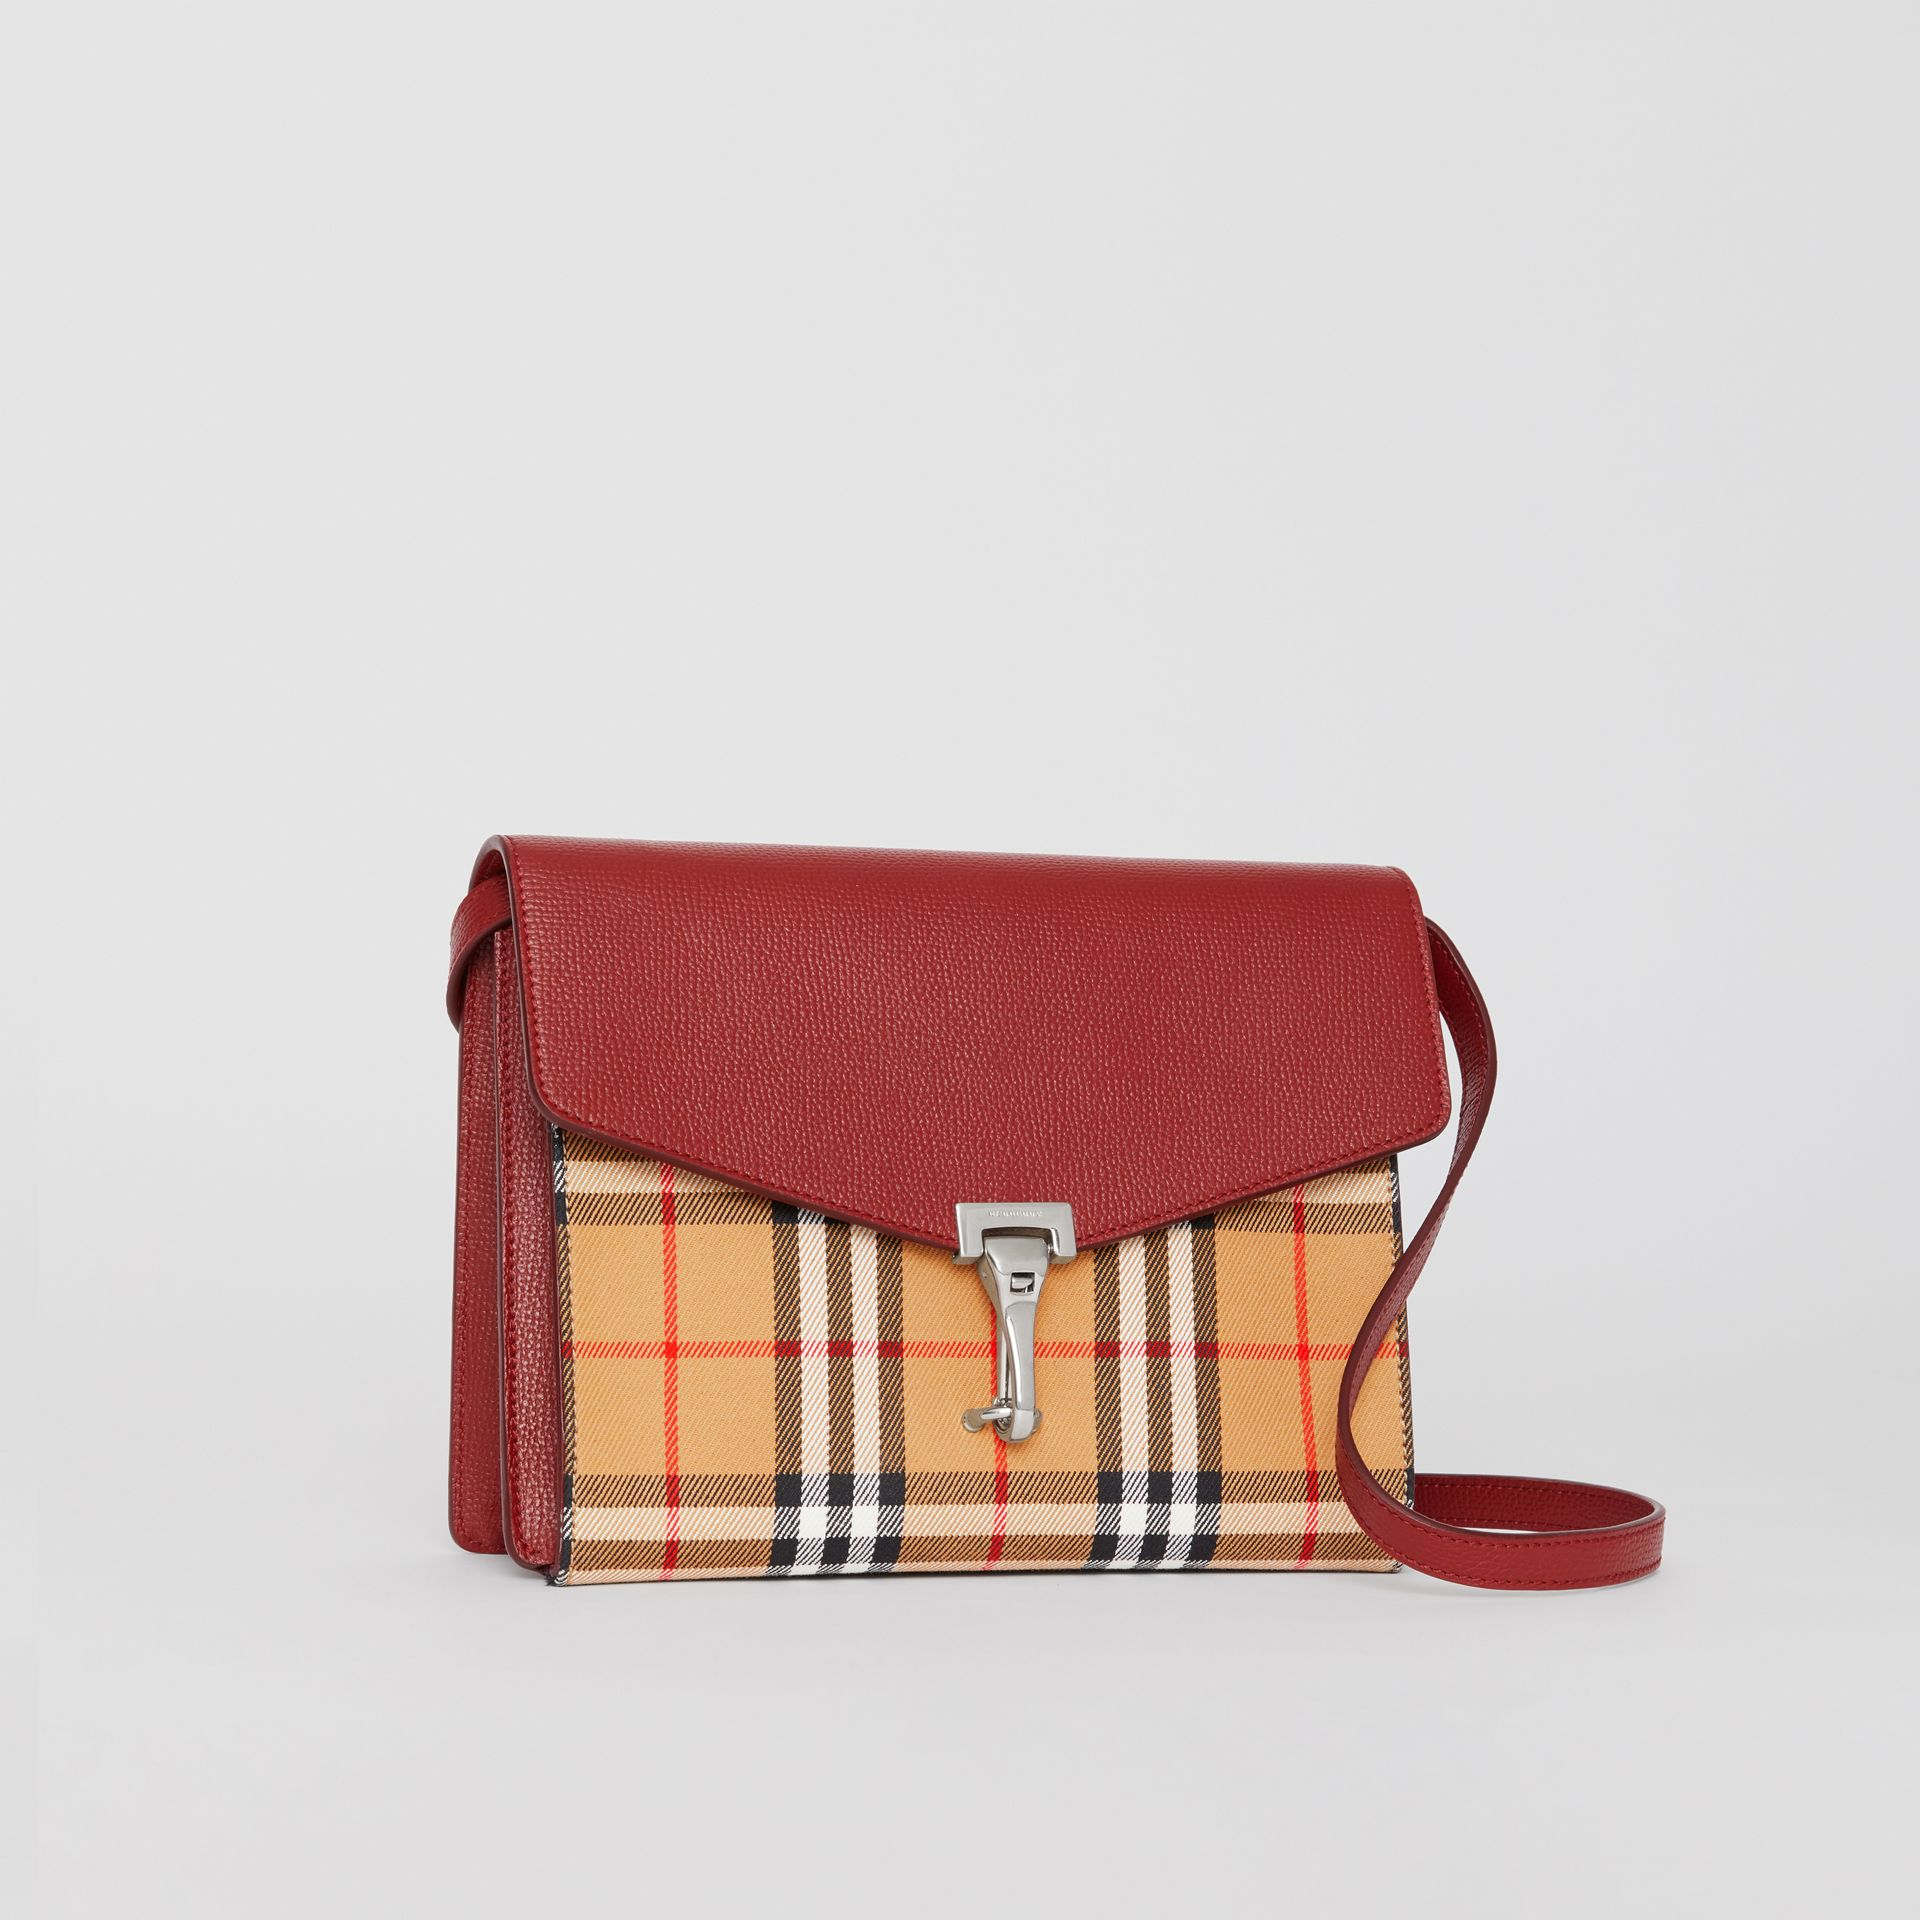 Small Vintage Check and Leather Crossbody Bag in Crimson - Women | Burberry Hong Kong - gallery image 4